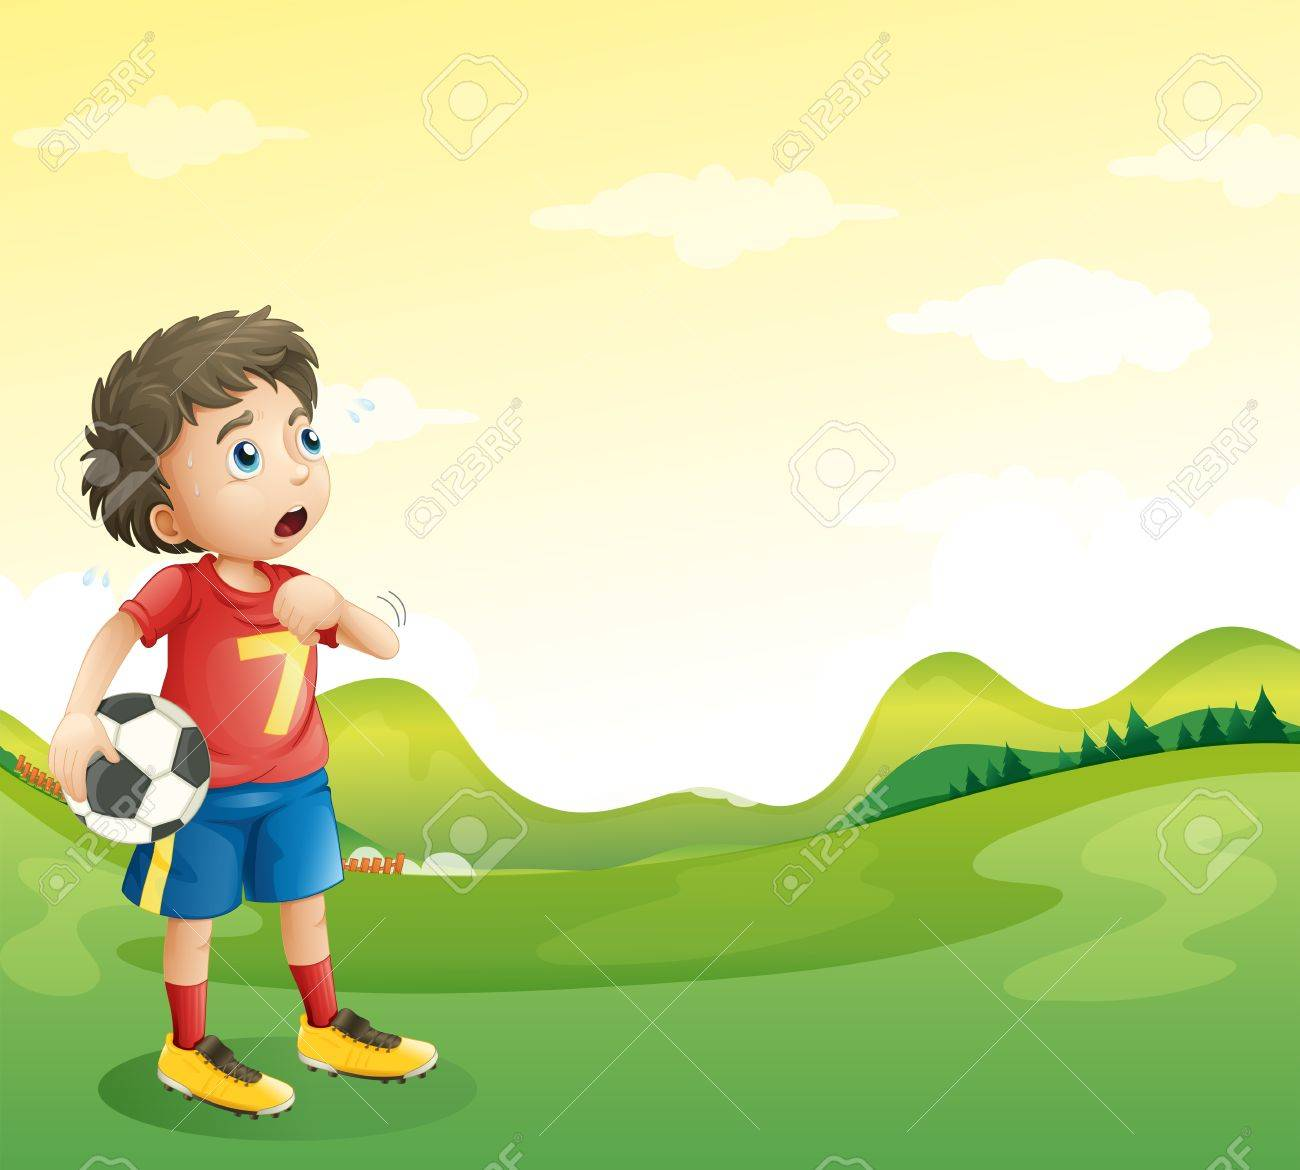 Illustration of a tired young soccer player in his red uniform Stock Vector - 19645250